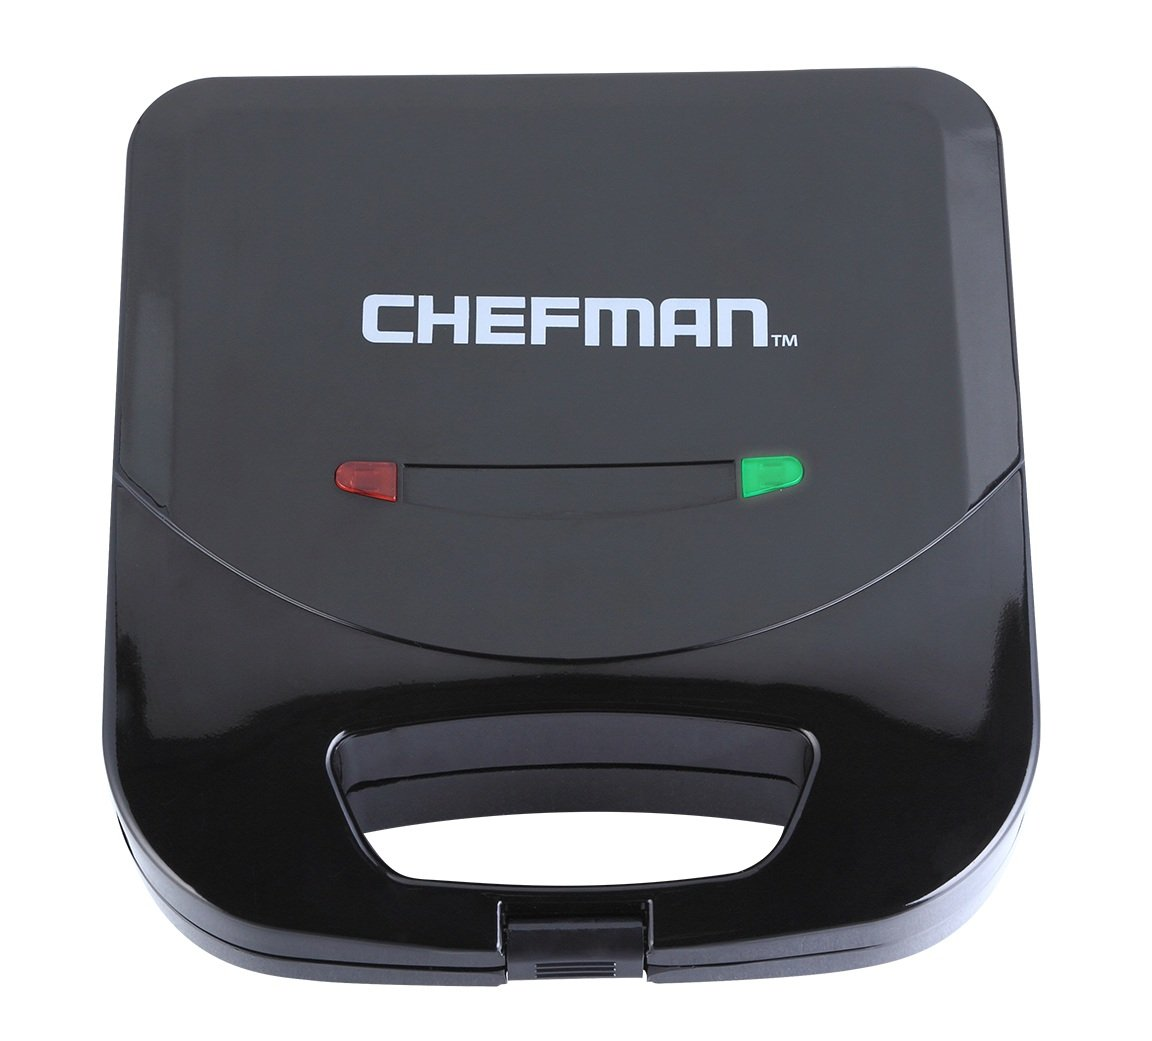 Chefman Dual Sandwich Maker Press, Non-Stick Surface, Fits 2 Sandwiches, Cuts Into Triangles, Easy Clean, Cool Touch Handles, Black